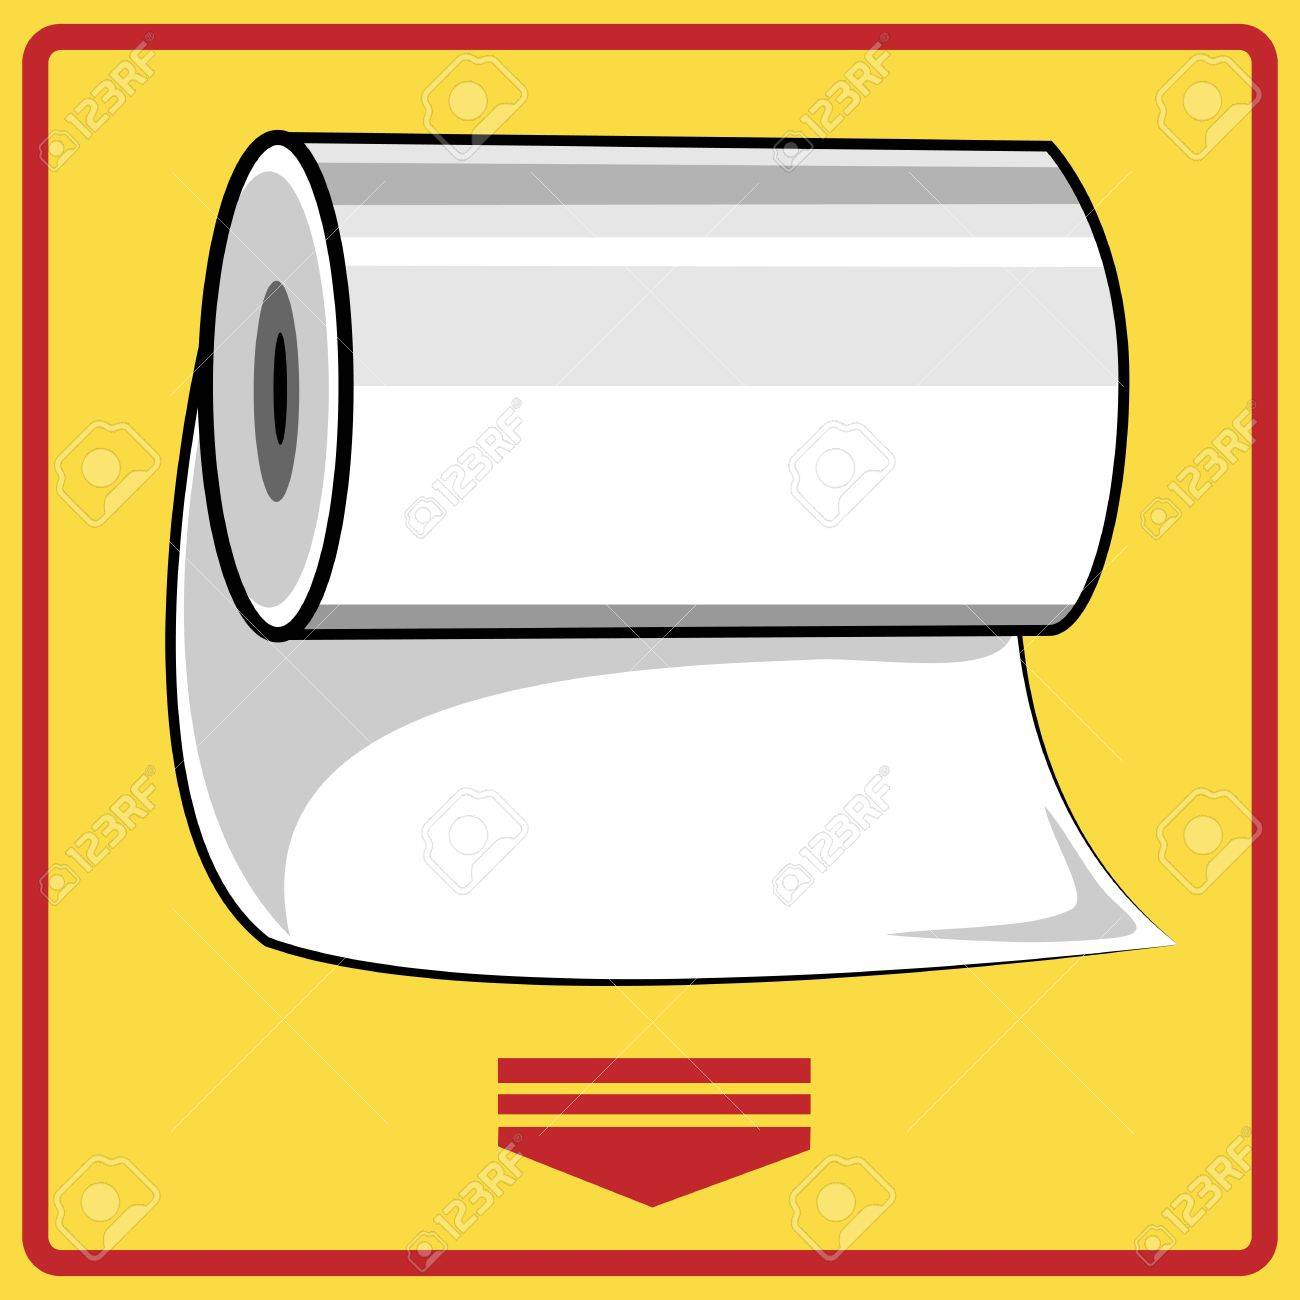 Hand paper towels roll Stock Vector - 15935578